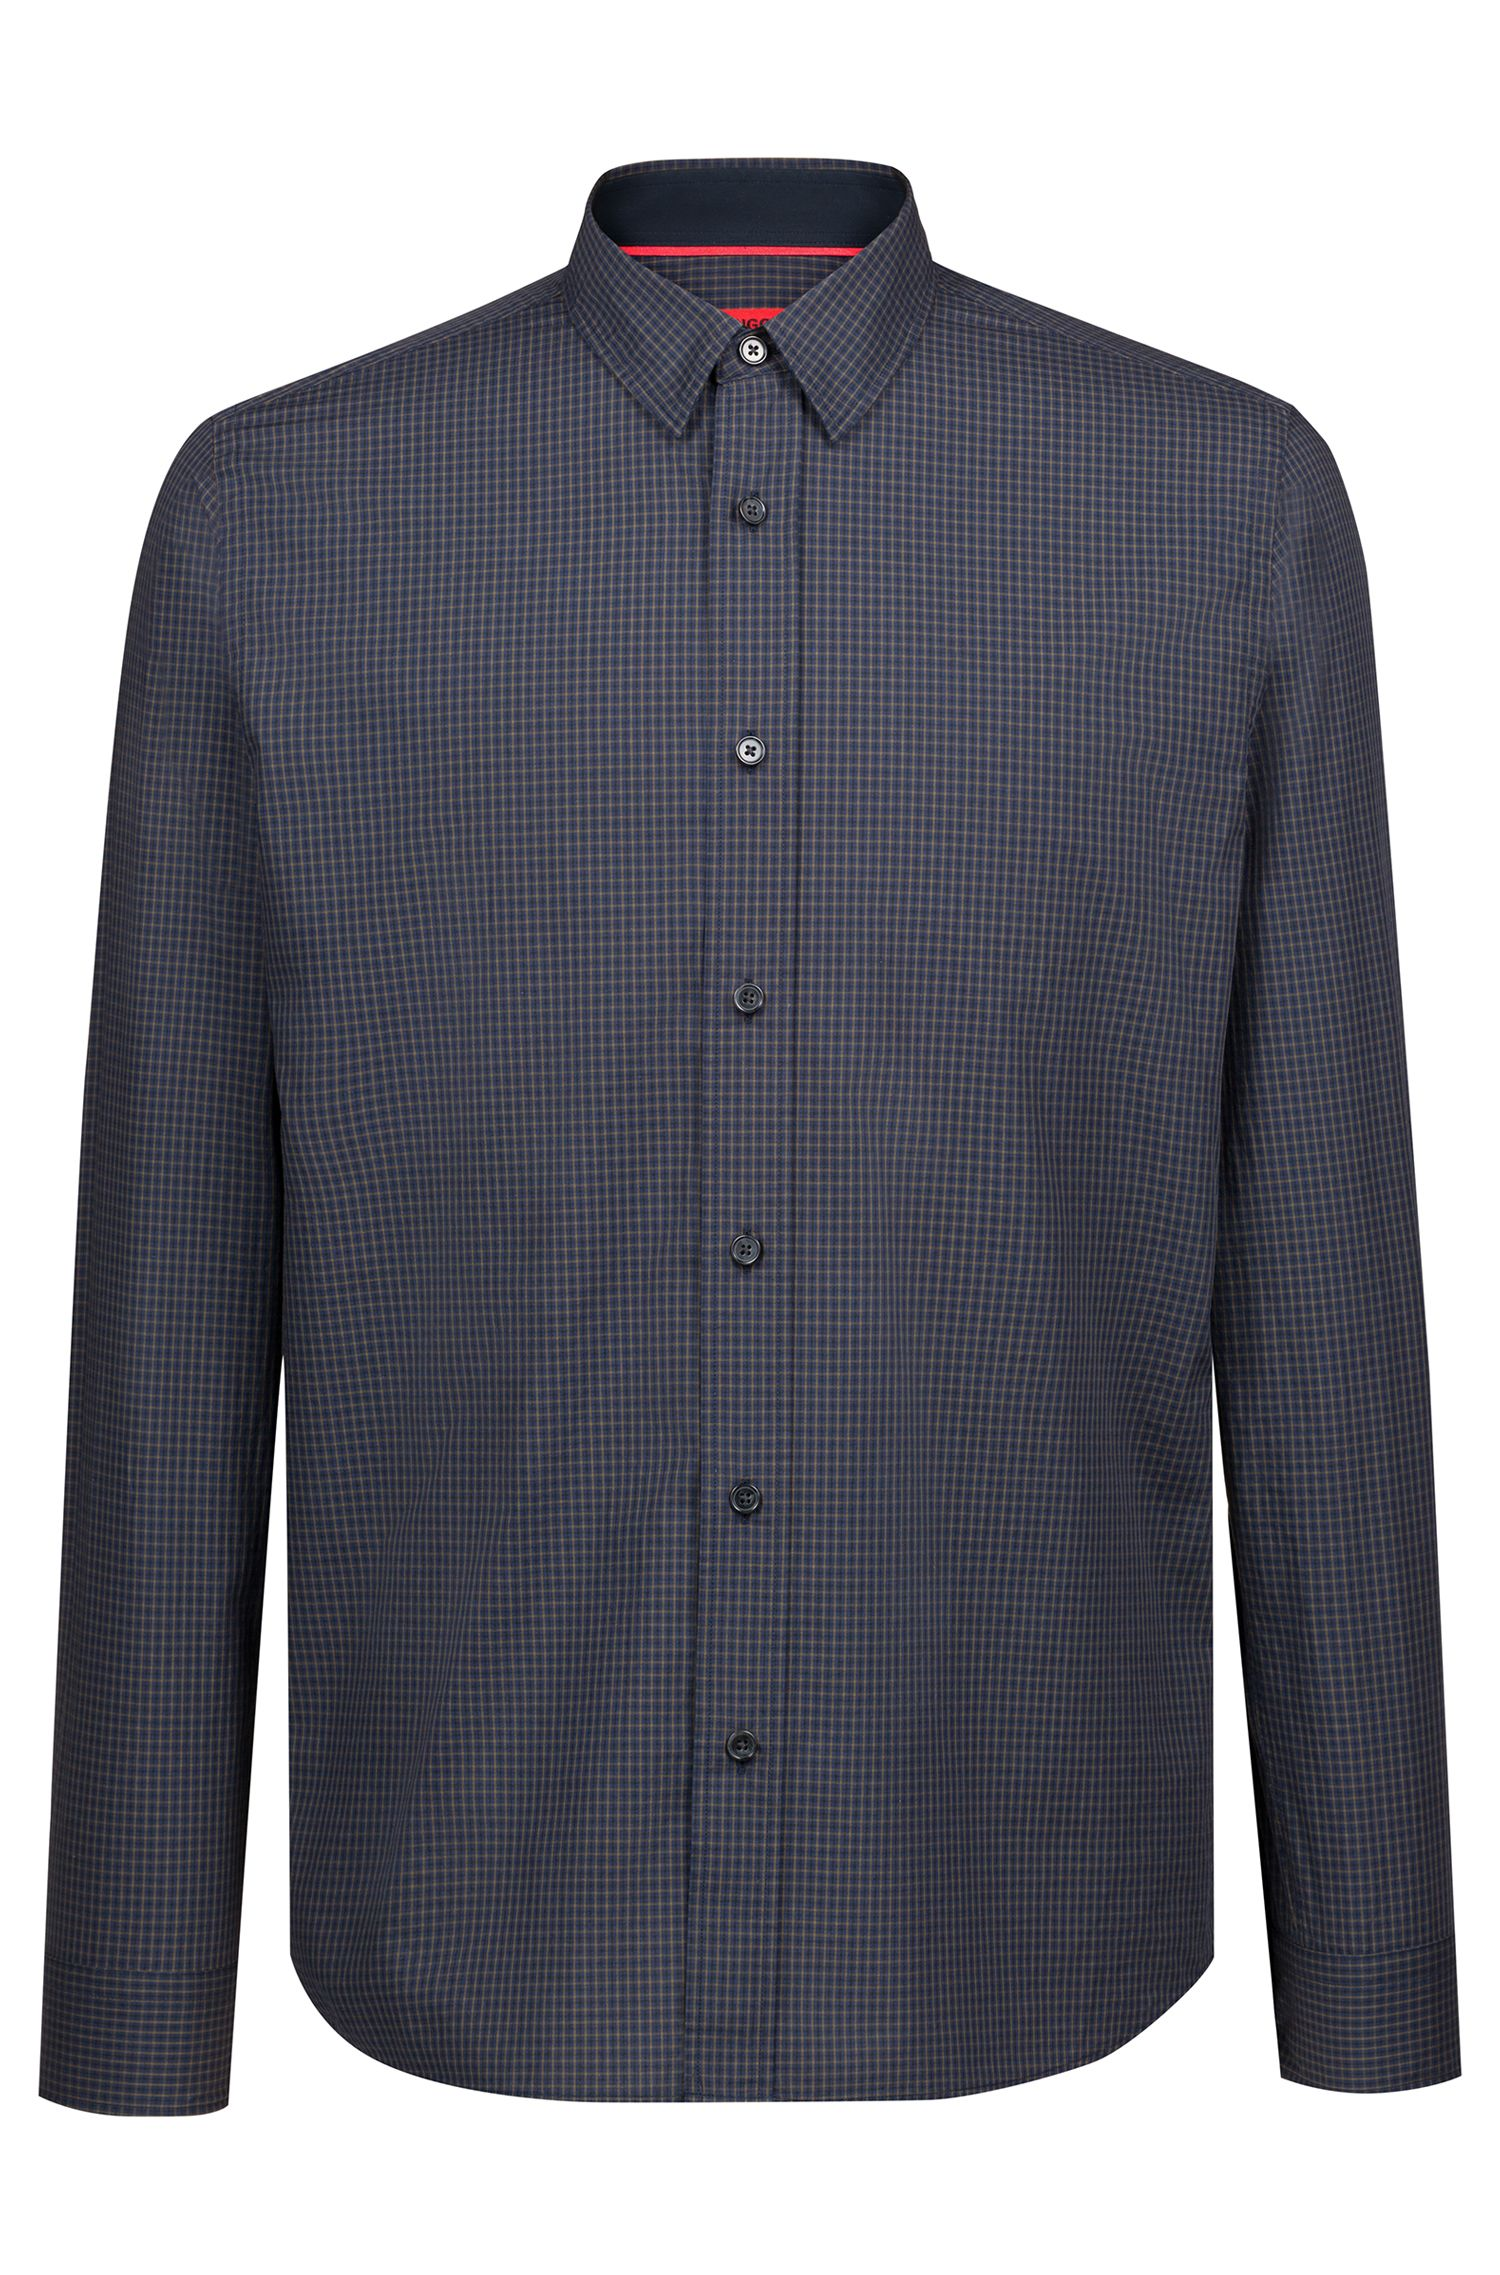 Relaxed-fit shirt in cotton tweed with heathered check pattern, Dark Green